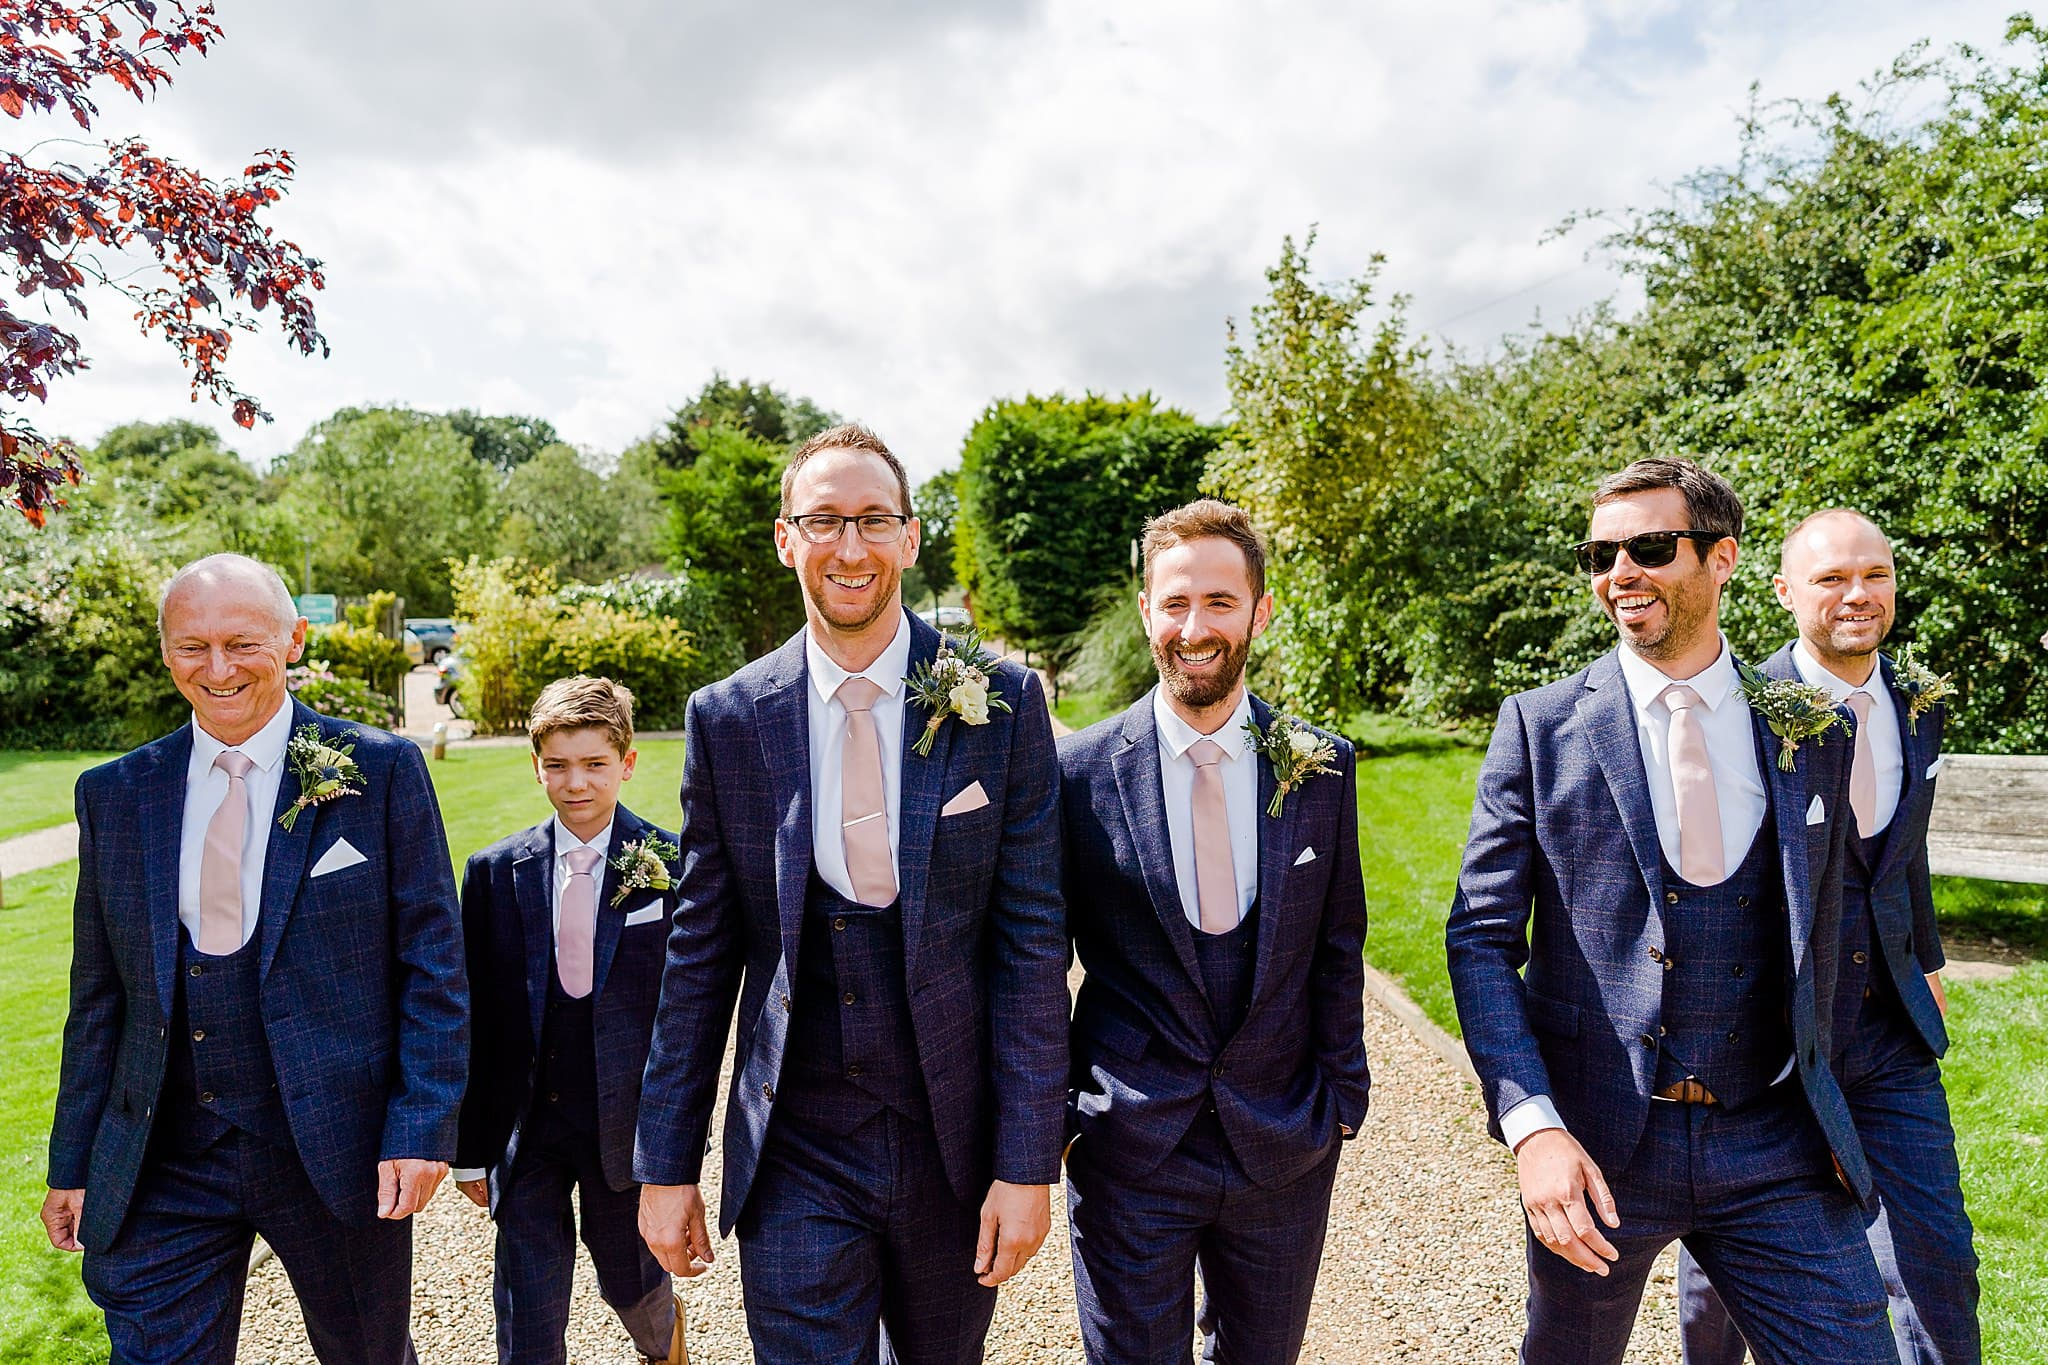 Groom and his groomsmen walk down the path at Carriage Hall